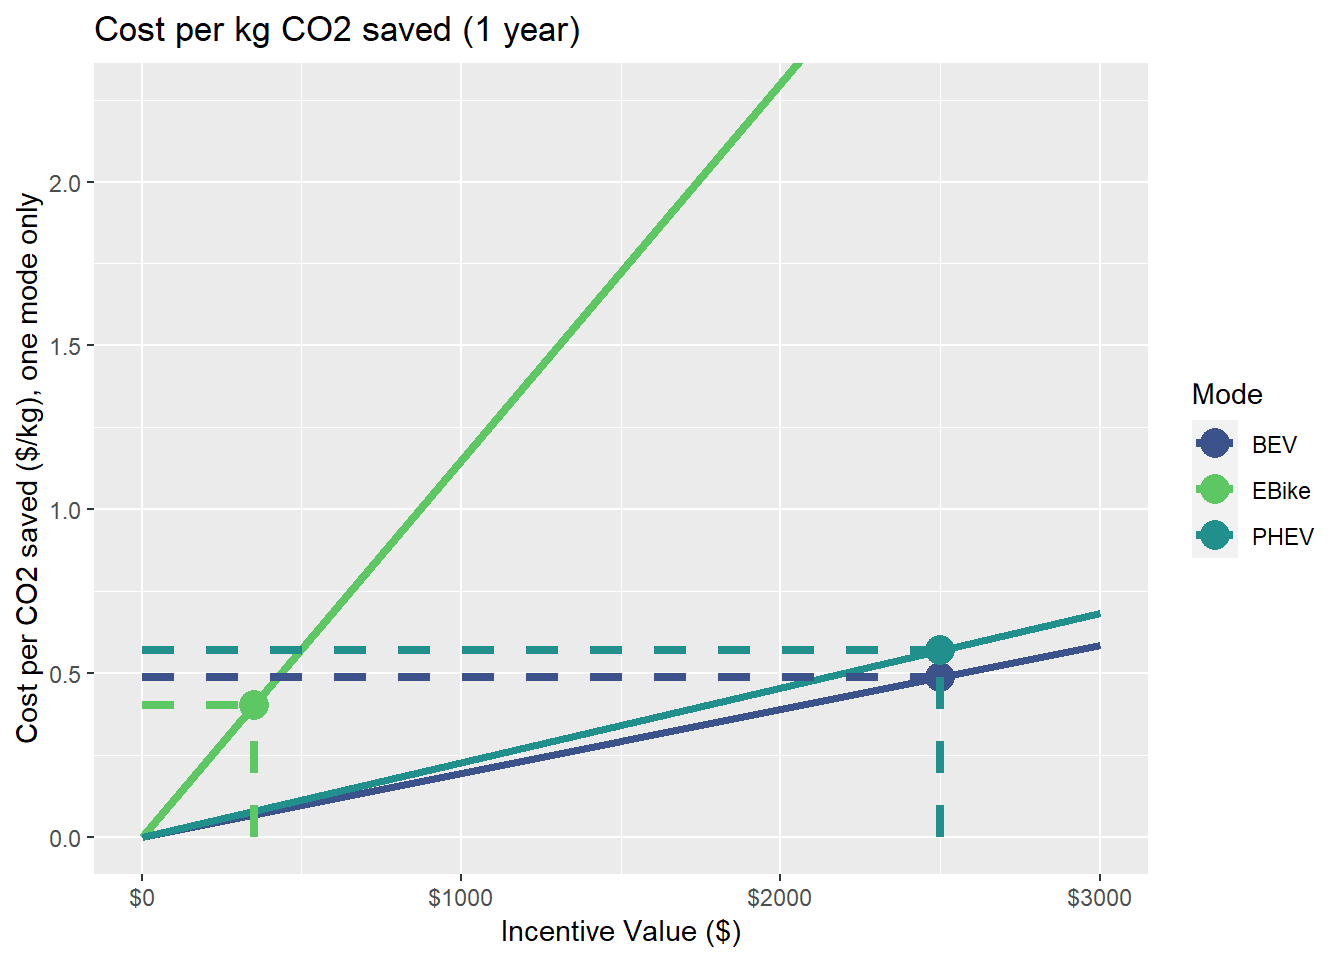 This plot displays the total cost per kilogram of CO2 saved over the course of one year. E-bikes cost $0.40, battery electric vehicles cost $0.49 per kg saved, and plug-in hybrid electric vehicles cost $0.57 per kg saved.